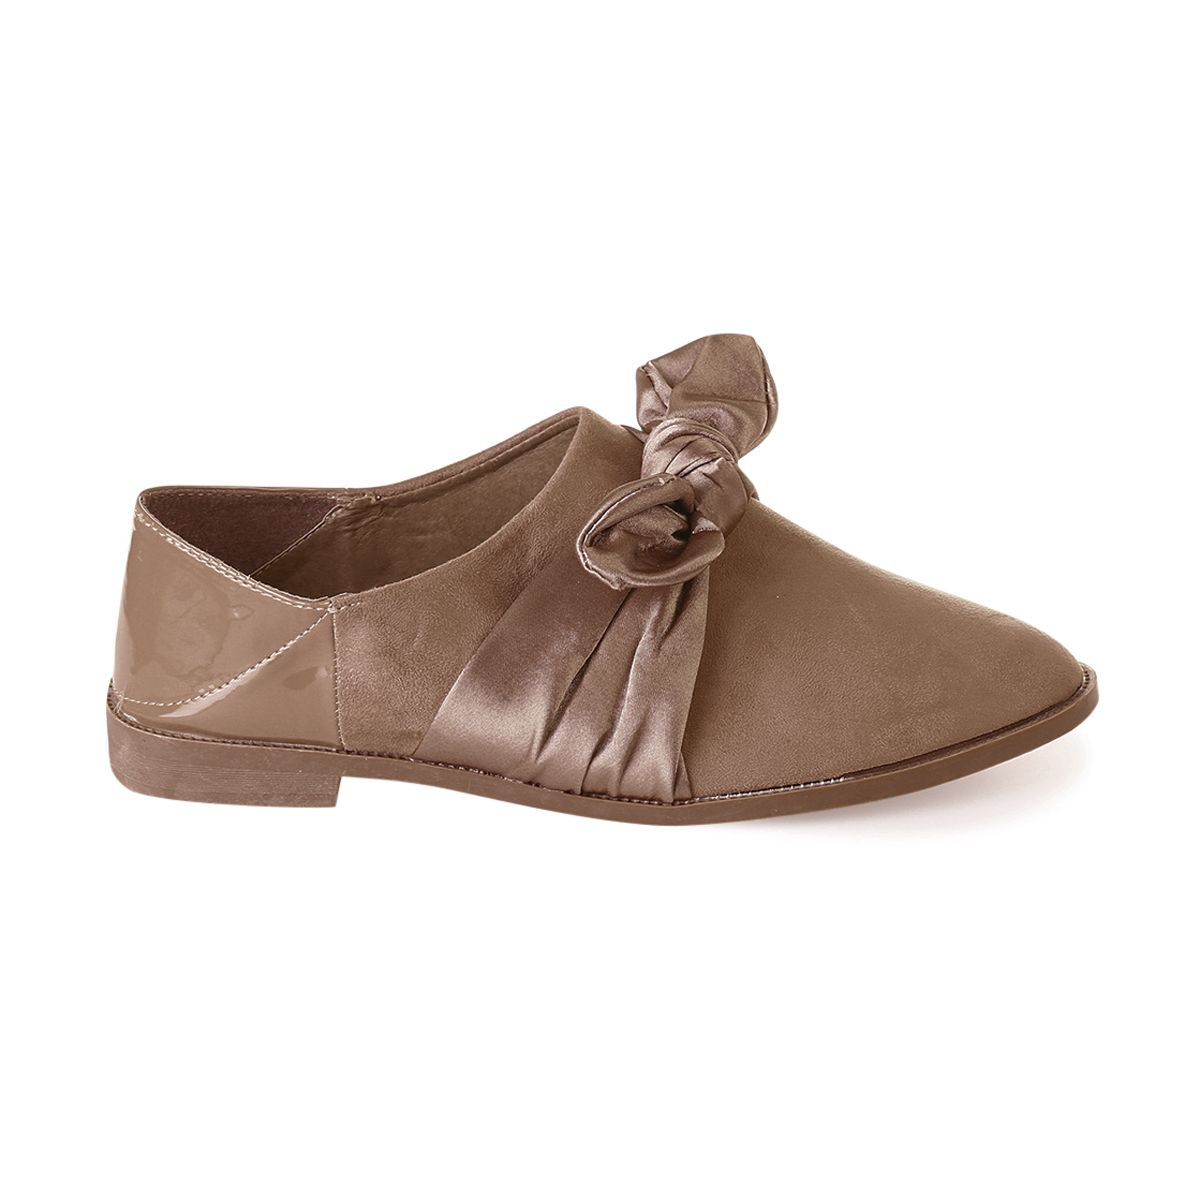 Derbies taupe à noeud satin